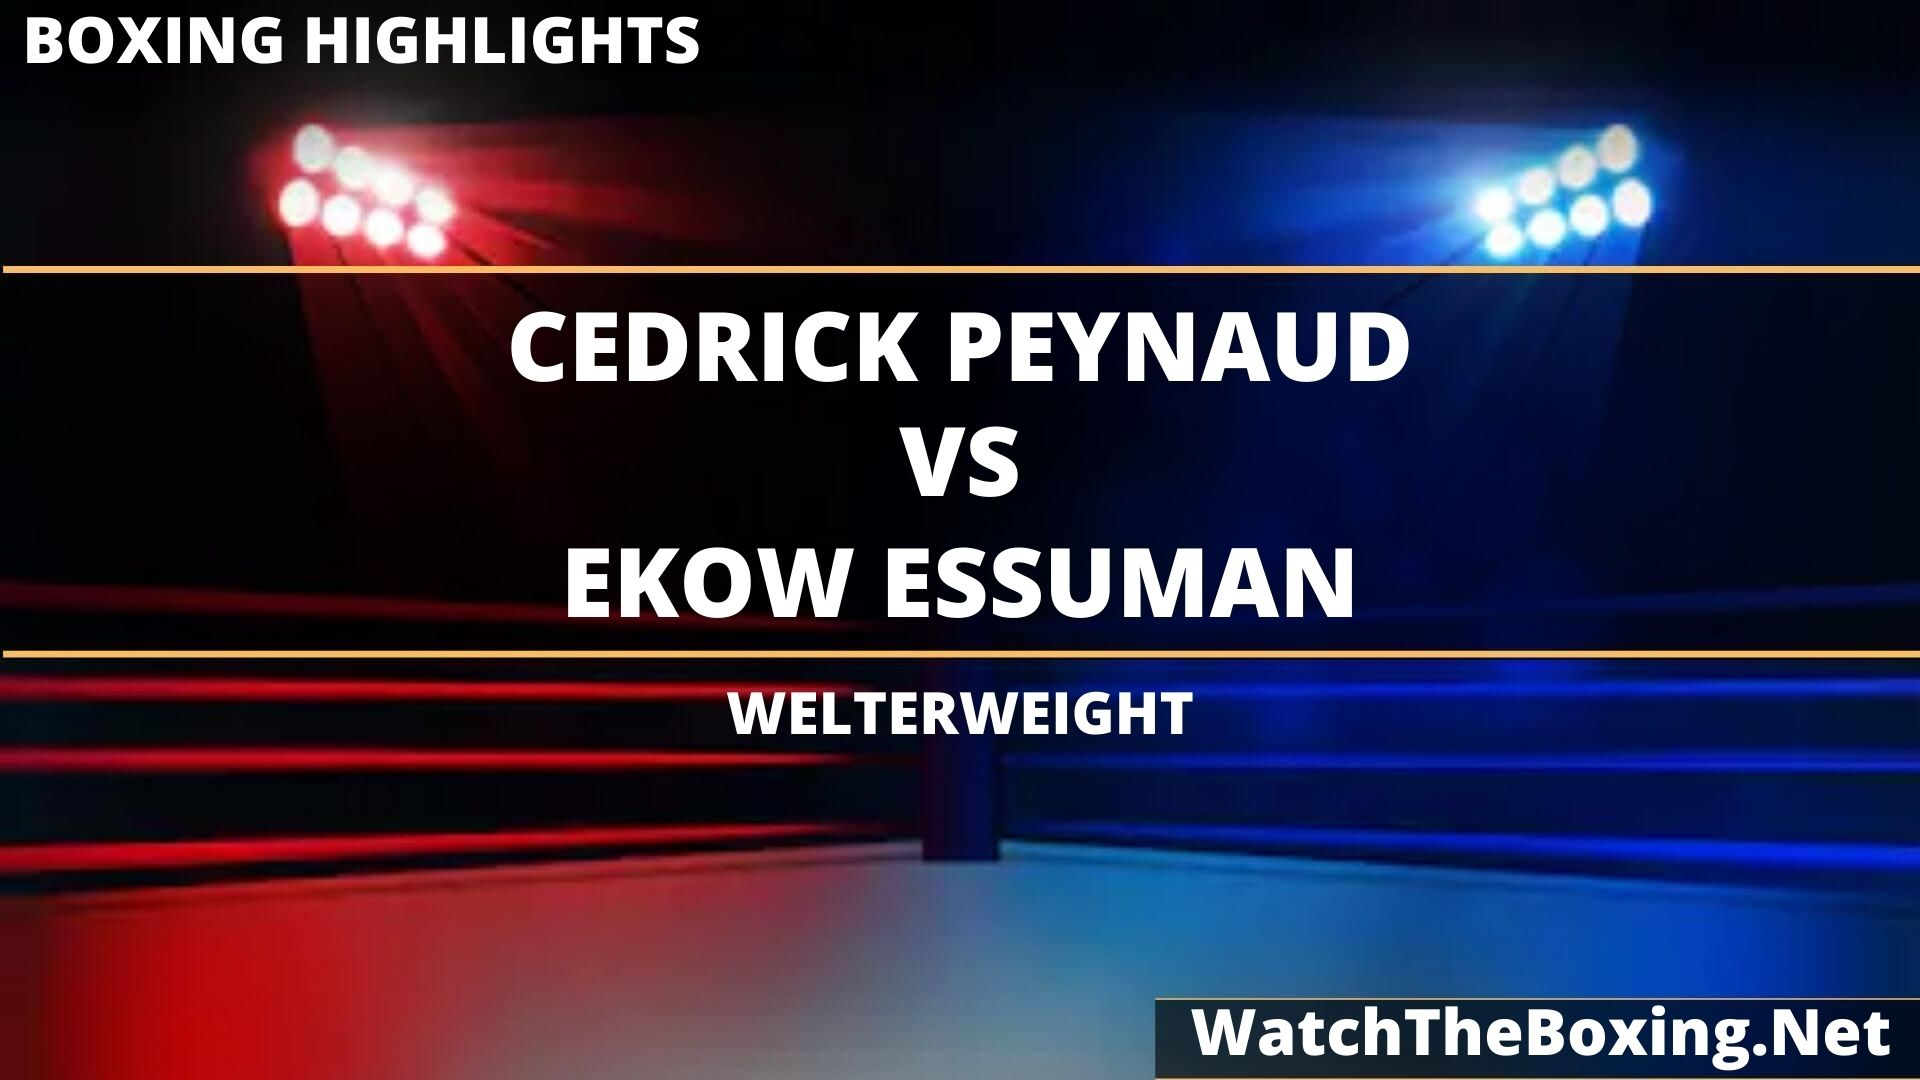 Cedrick Peynaud Vs Ekow Essuman Highlights 2020 Welterweight